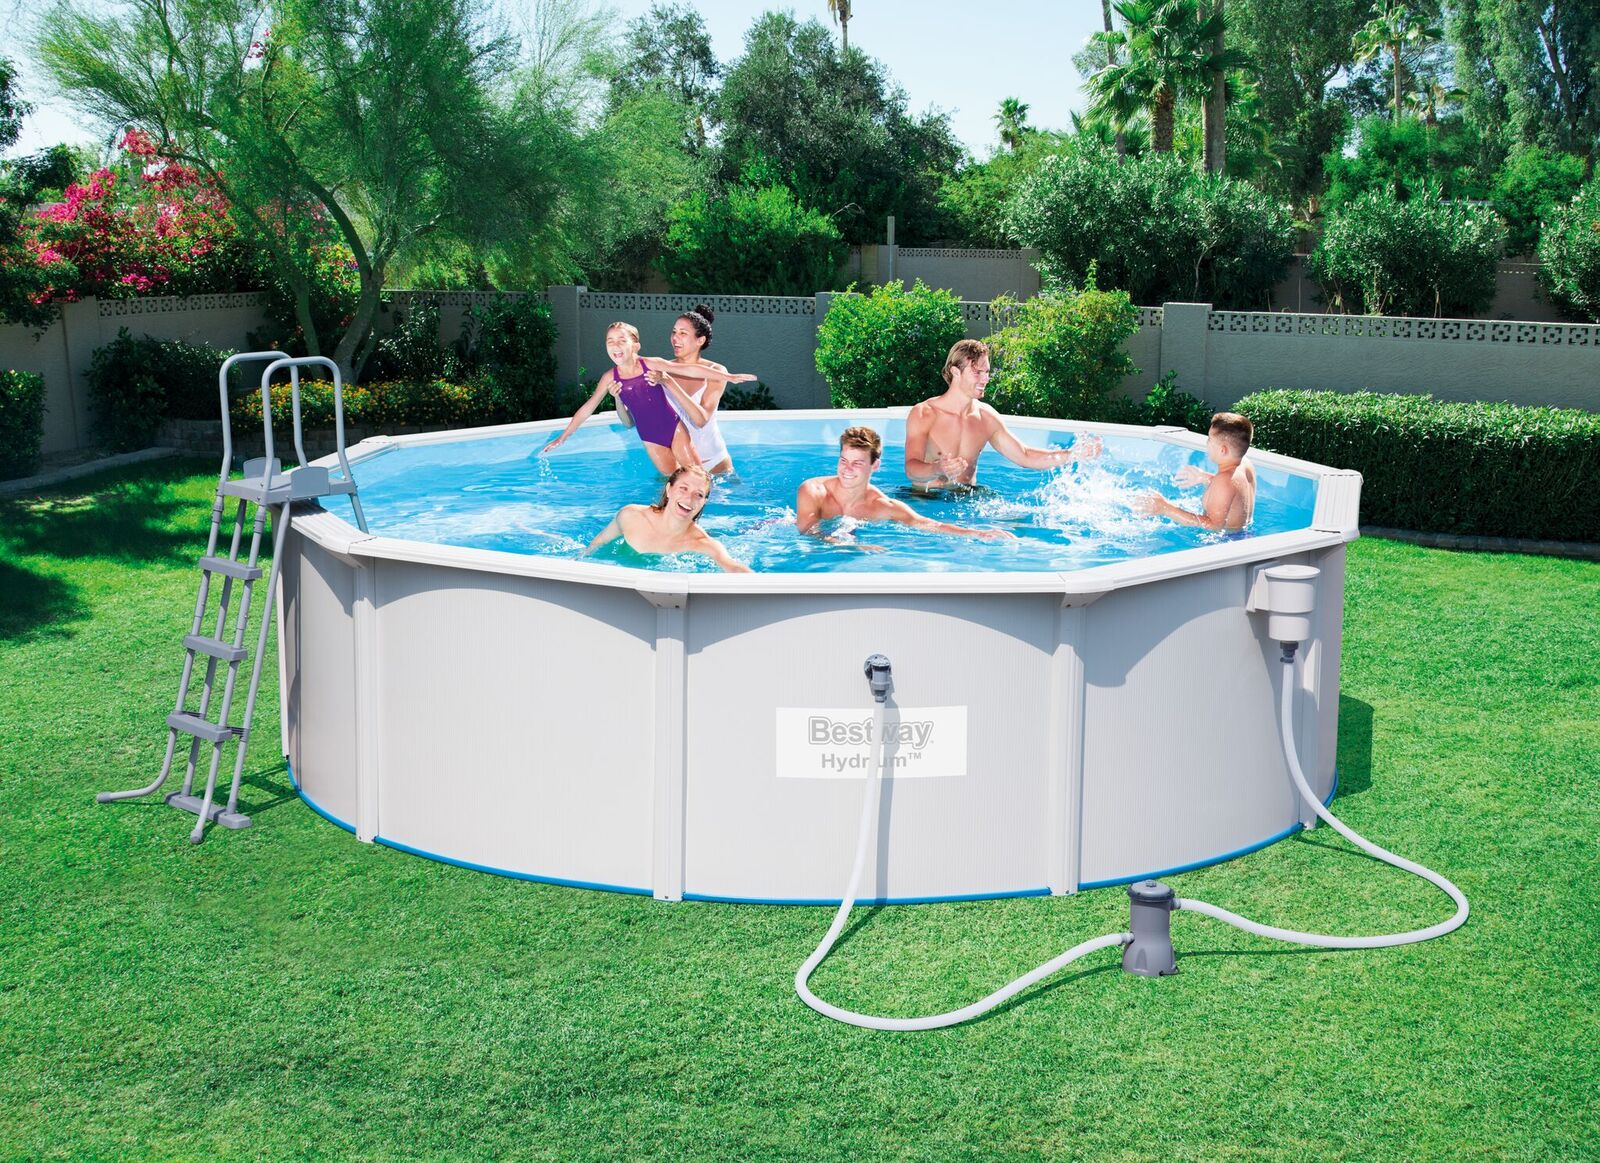 Piscine tubulaire ronde steel wall pool best way hydrium for Calcul volume piscine ronde